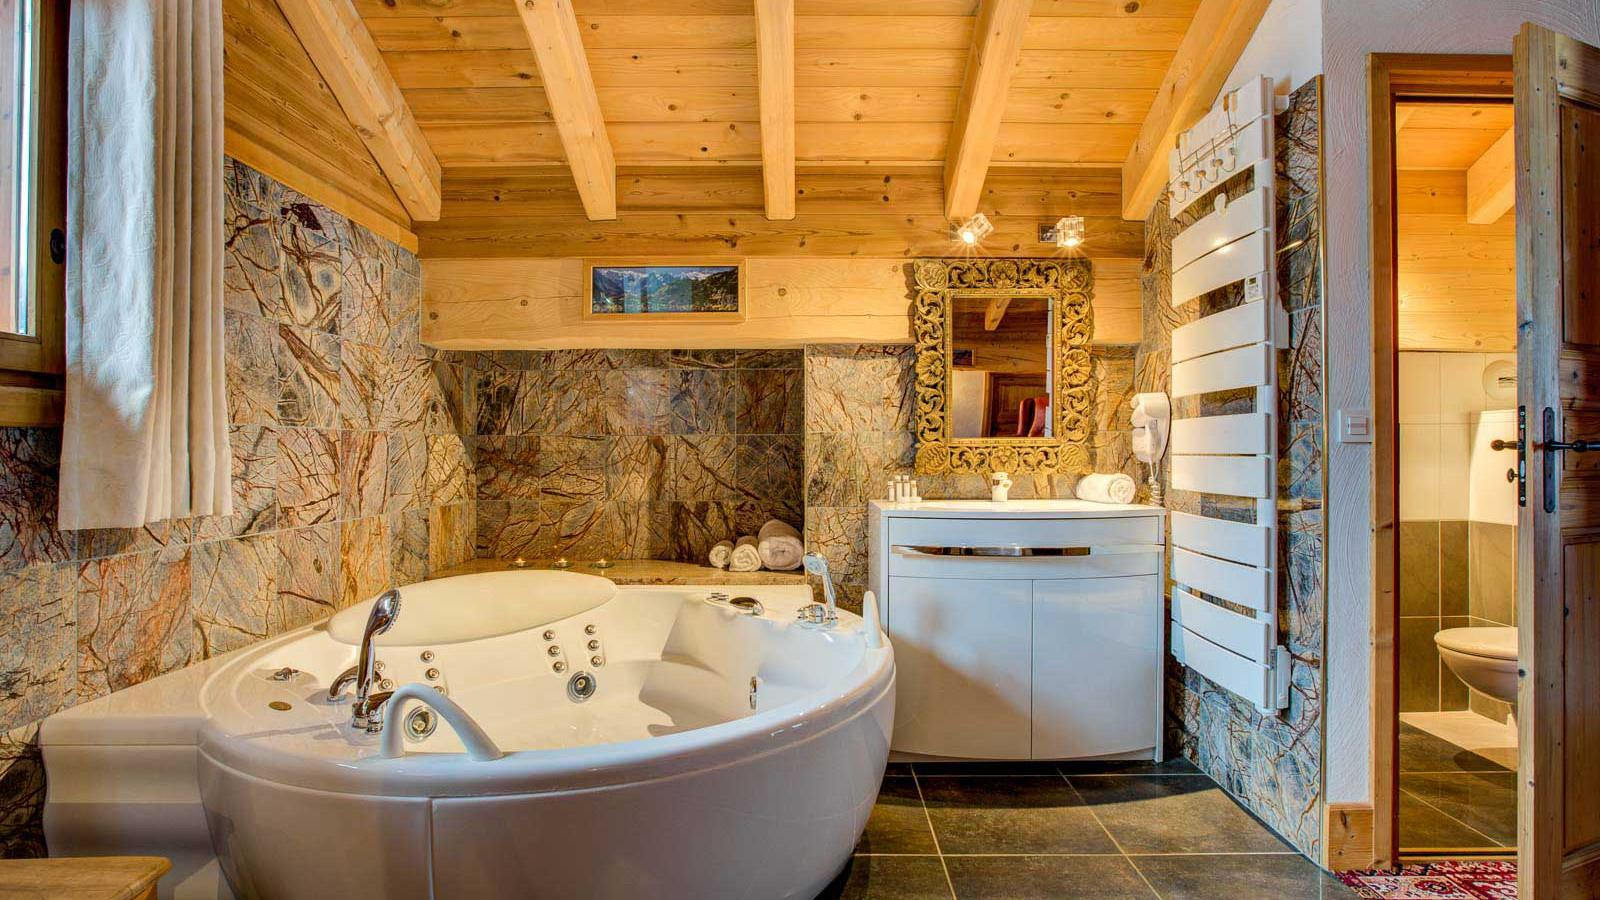 Chalet Laetitia bathroom with corner bubble bath